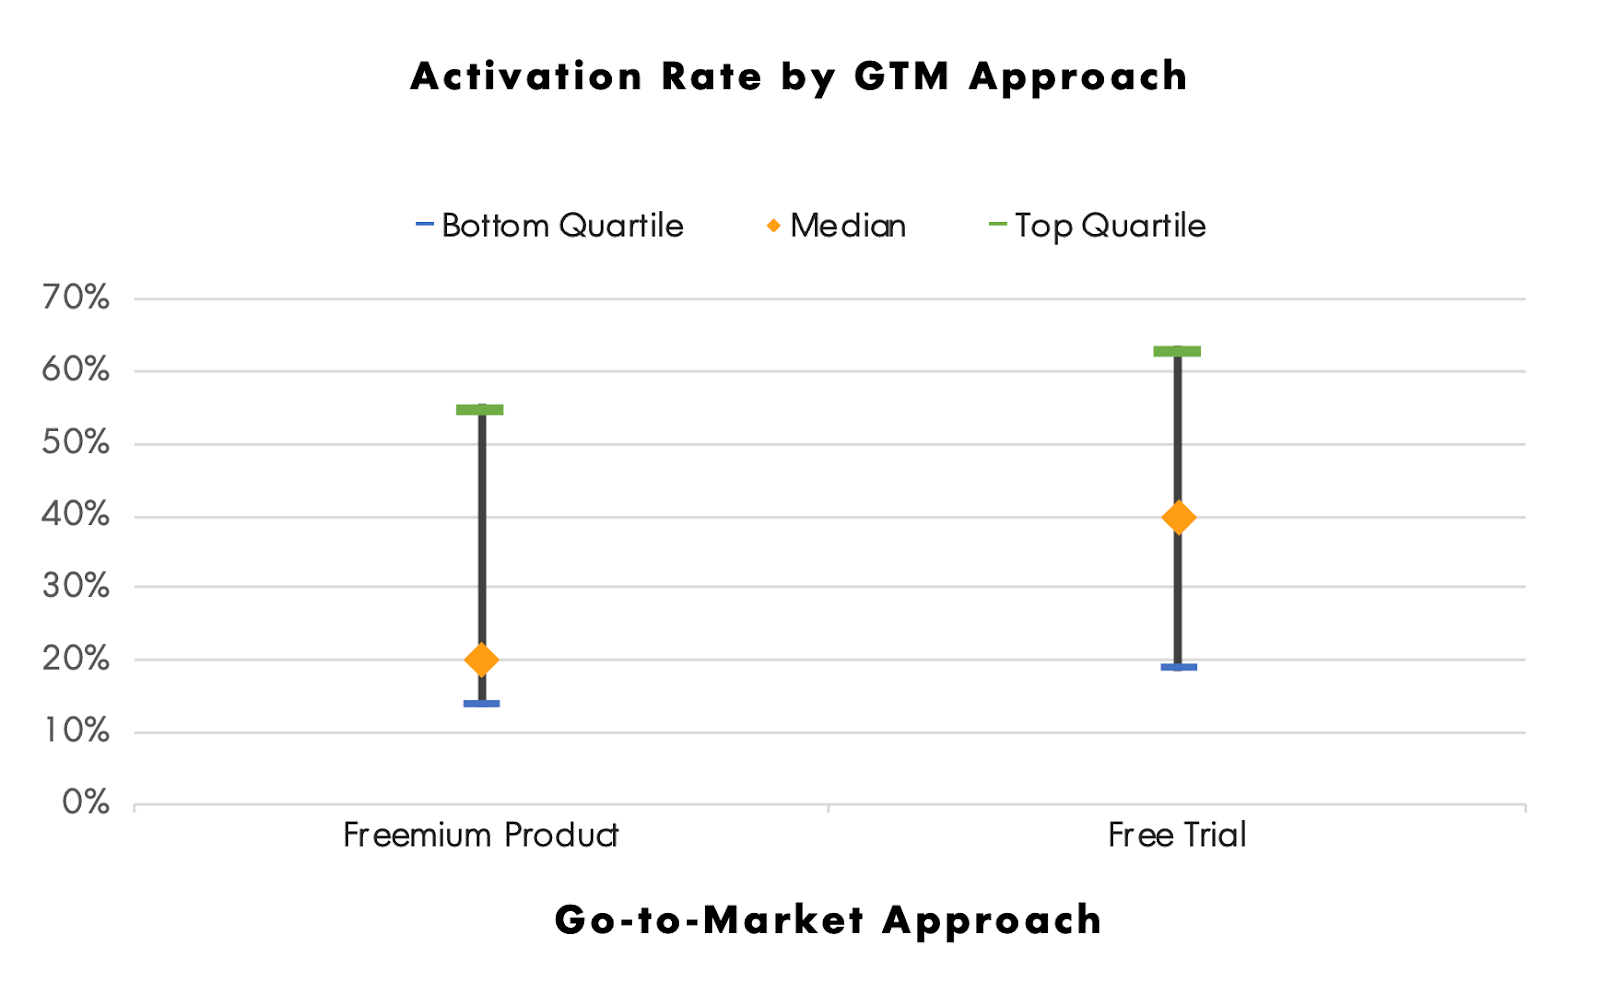 Go-to-market approach